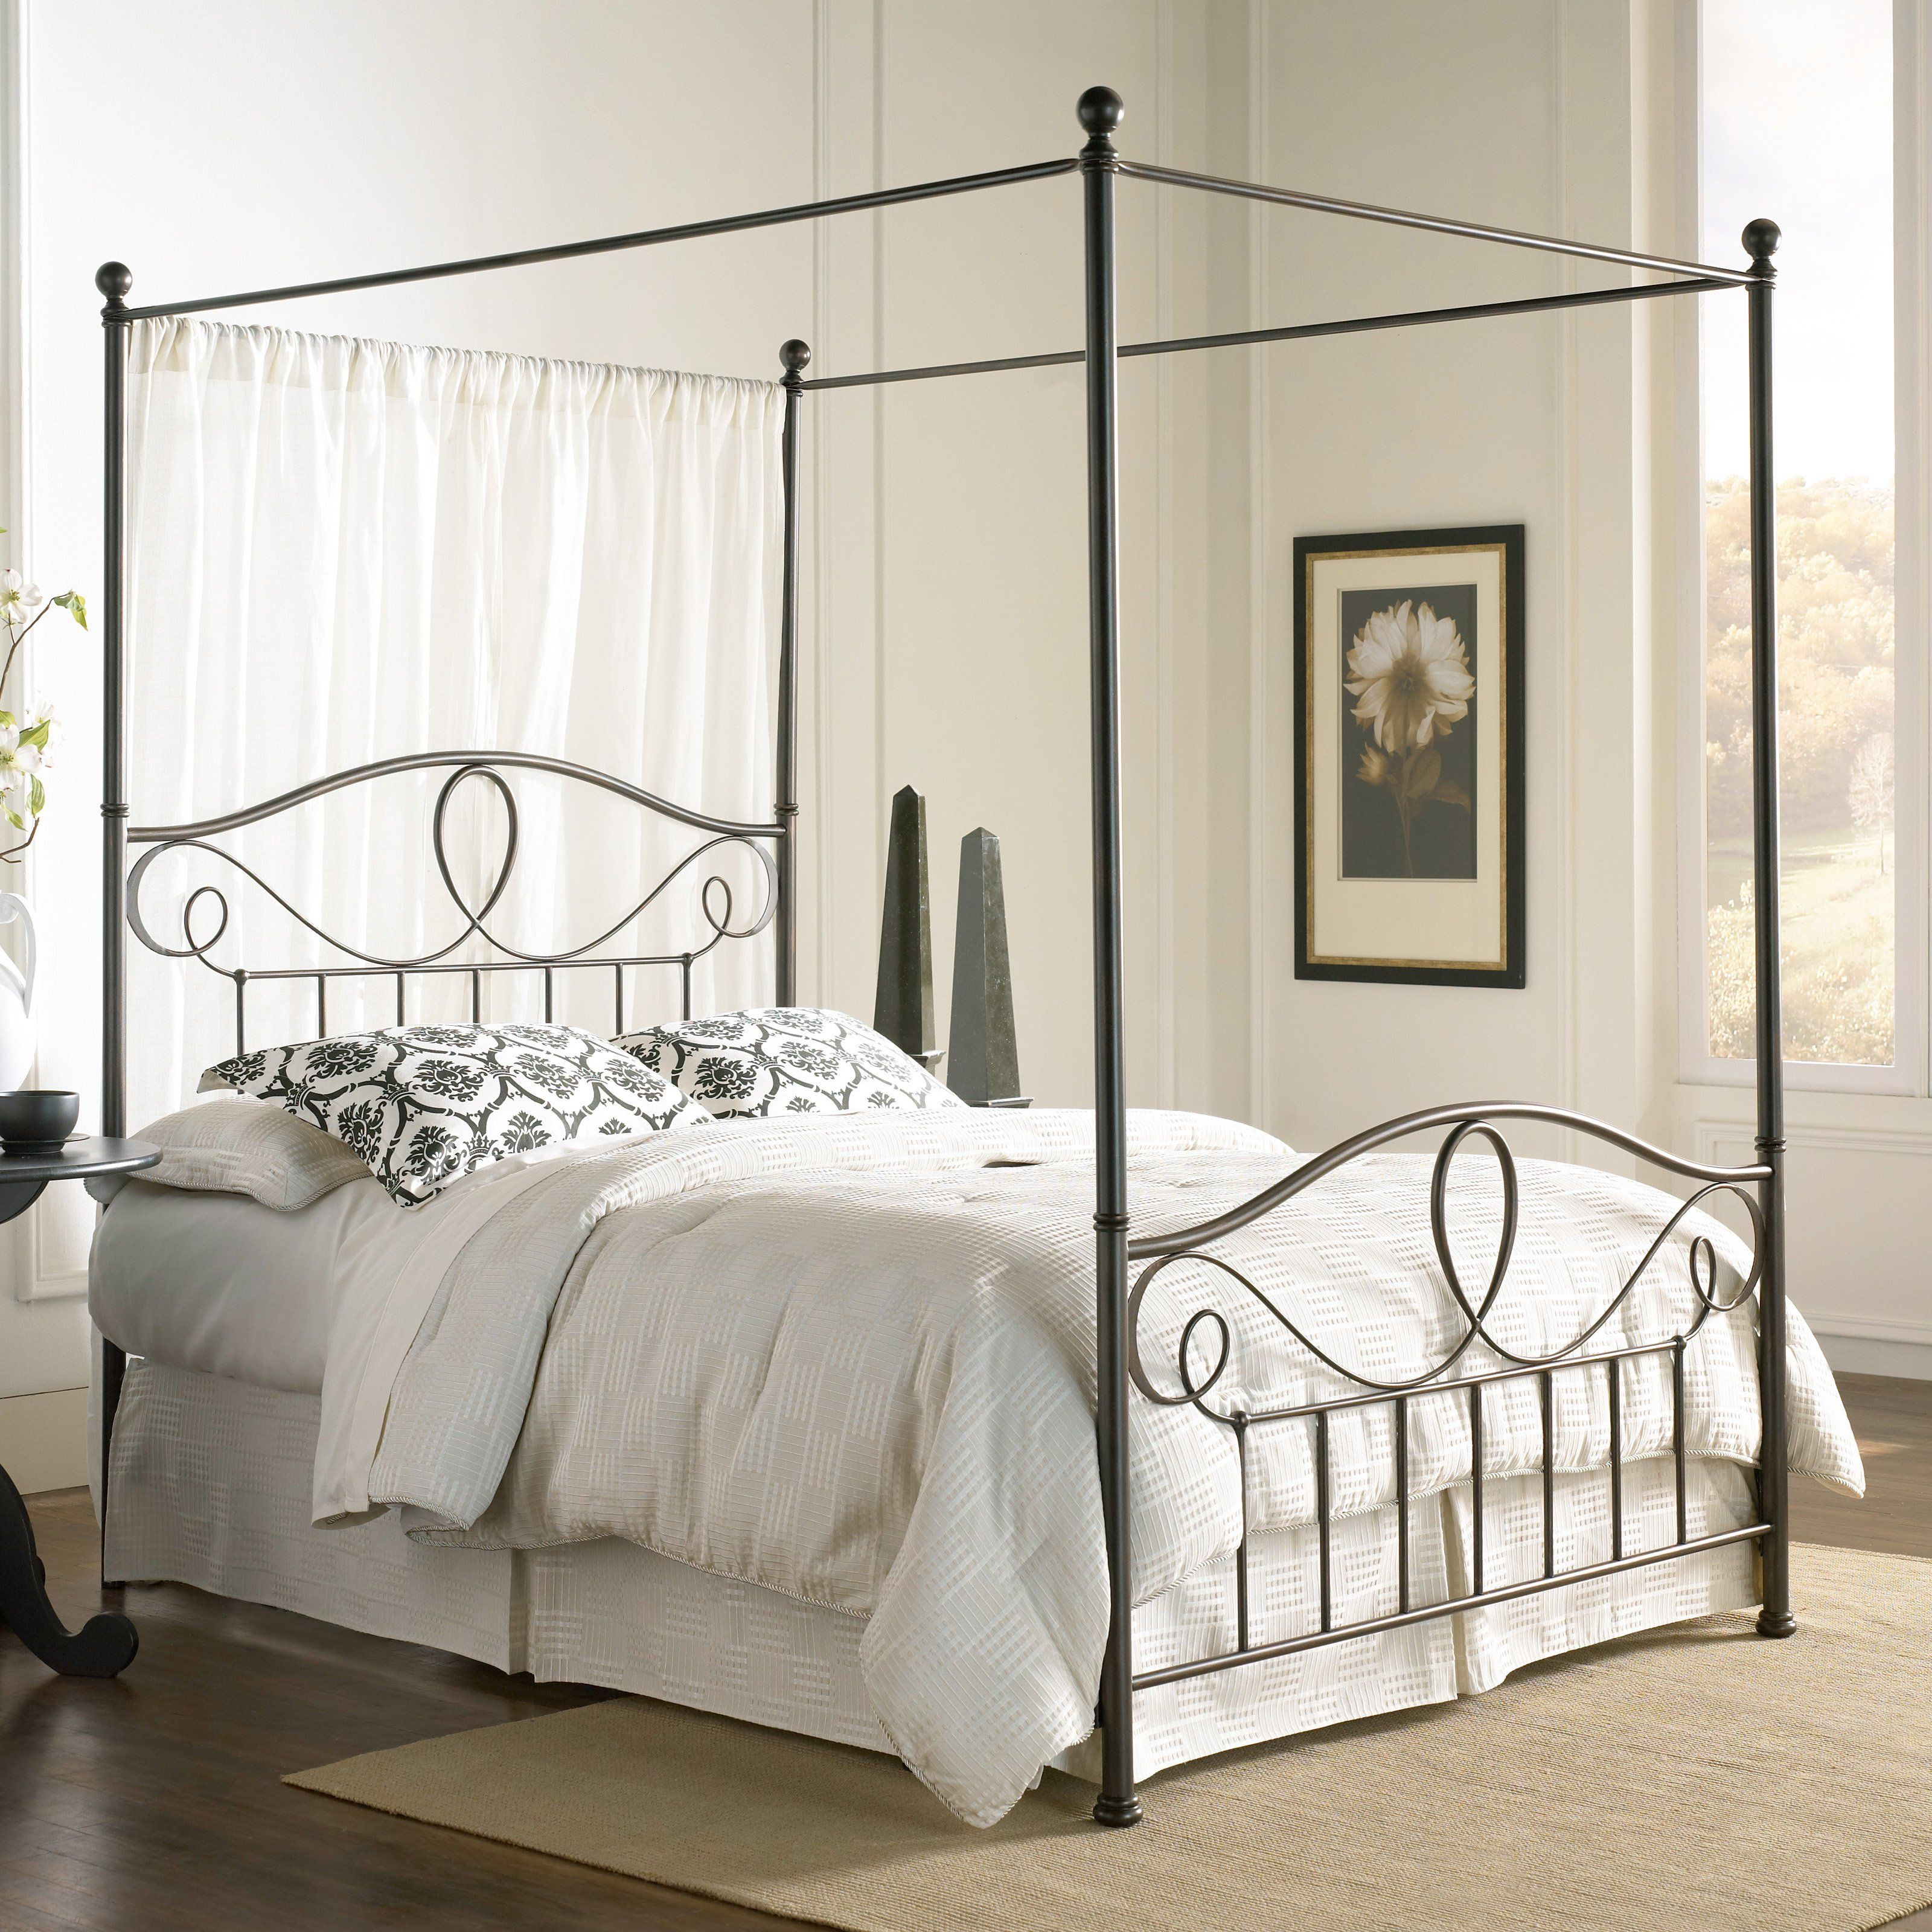 Fashion Bed Group Sylvania Canopy Bed   RN831